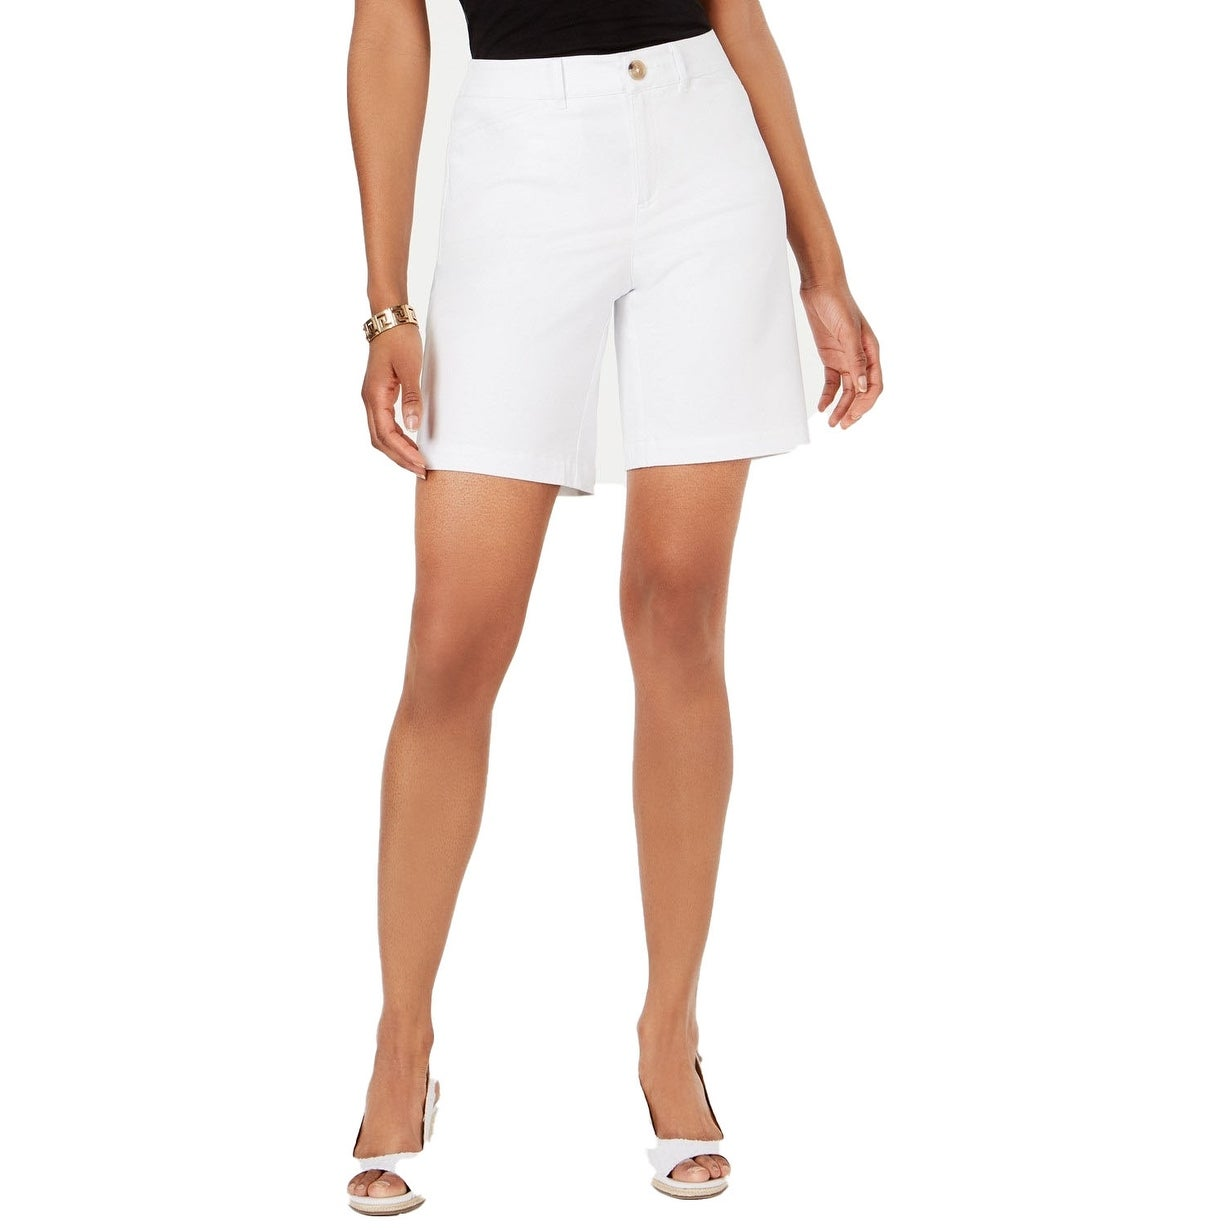 Charter Club Women S Mid Rise Twill Shorts Bright White Size 18 10 Overstock 29011043